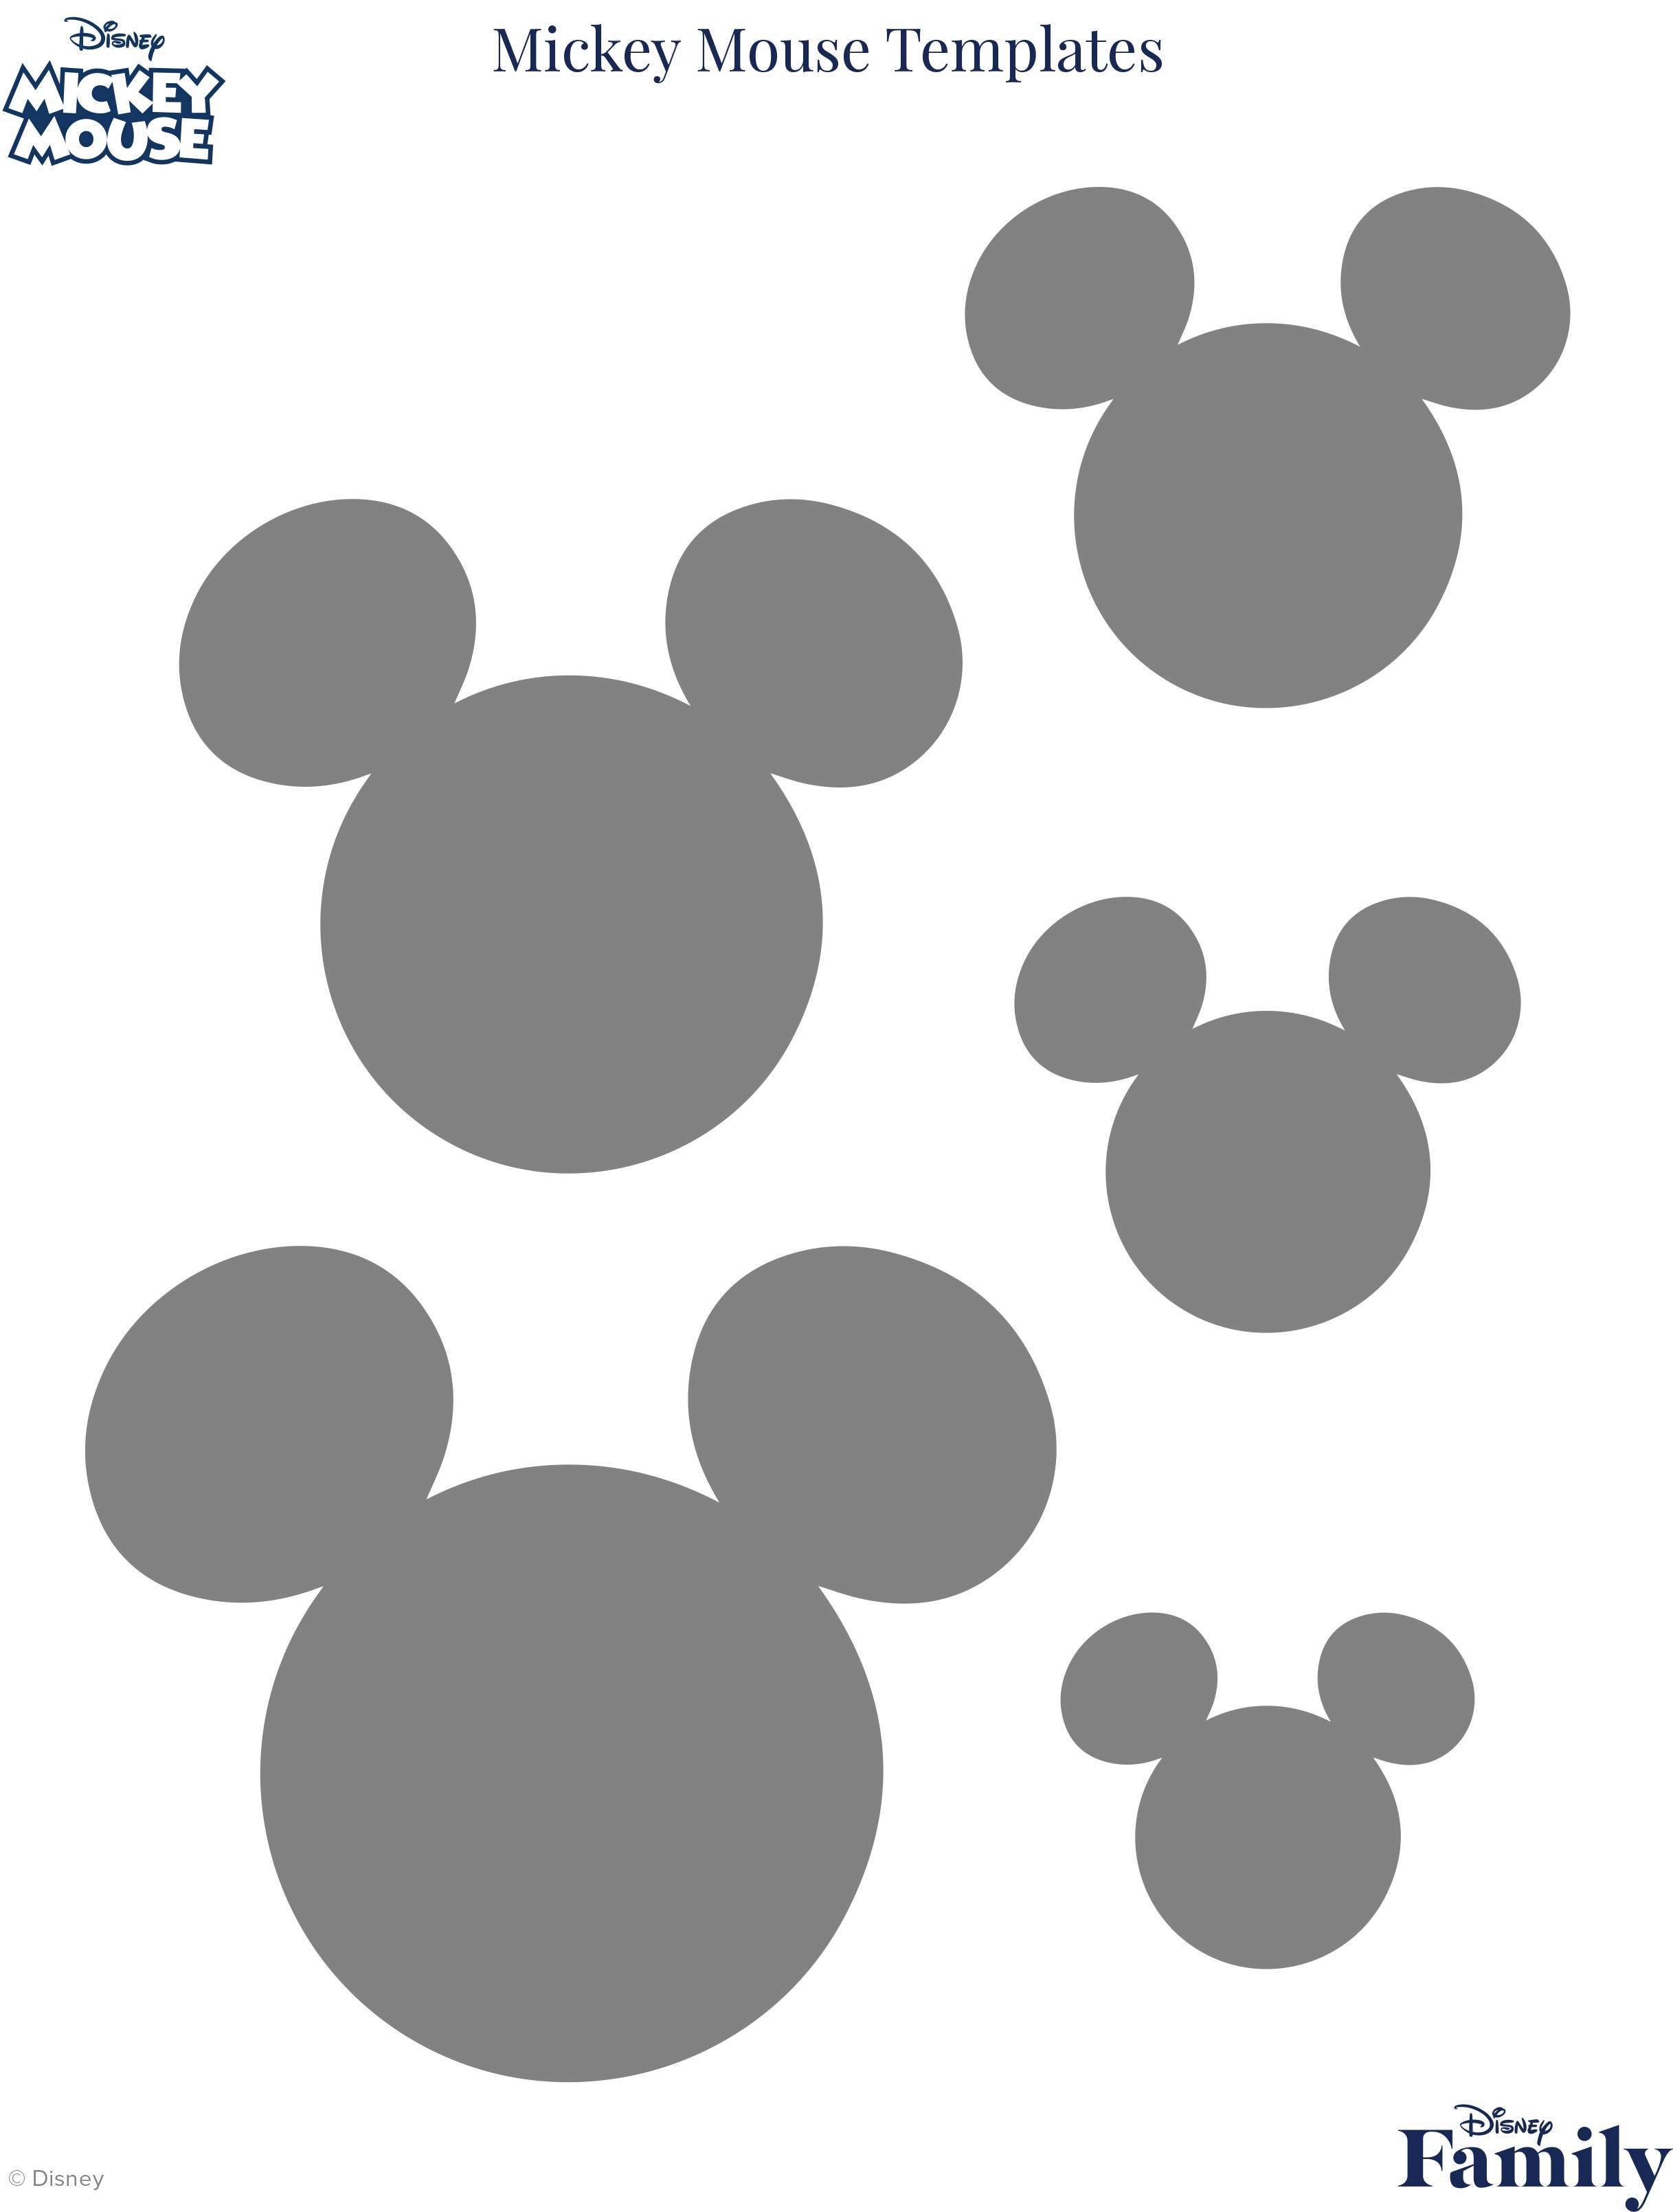 Mickey Mouse Template | Disney Family - Free Mickey Mouse Printable Templates